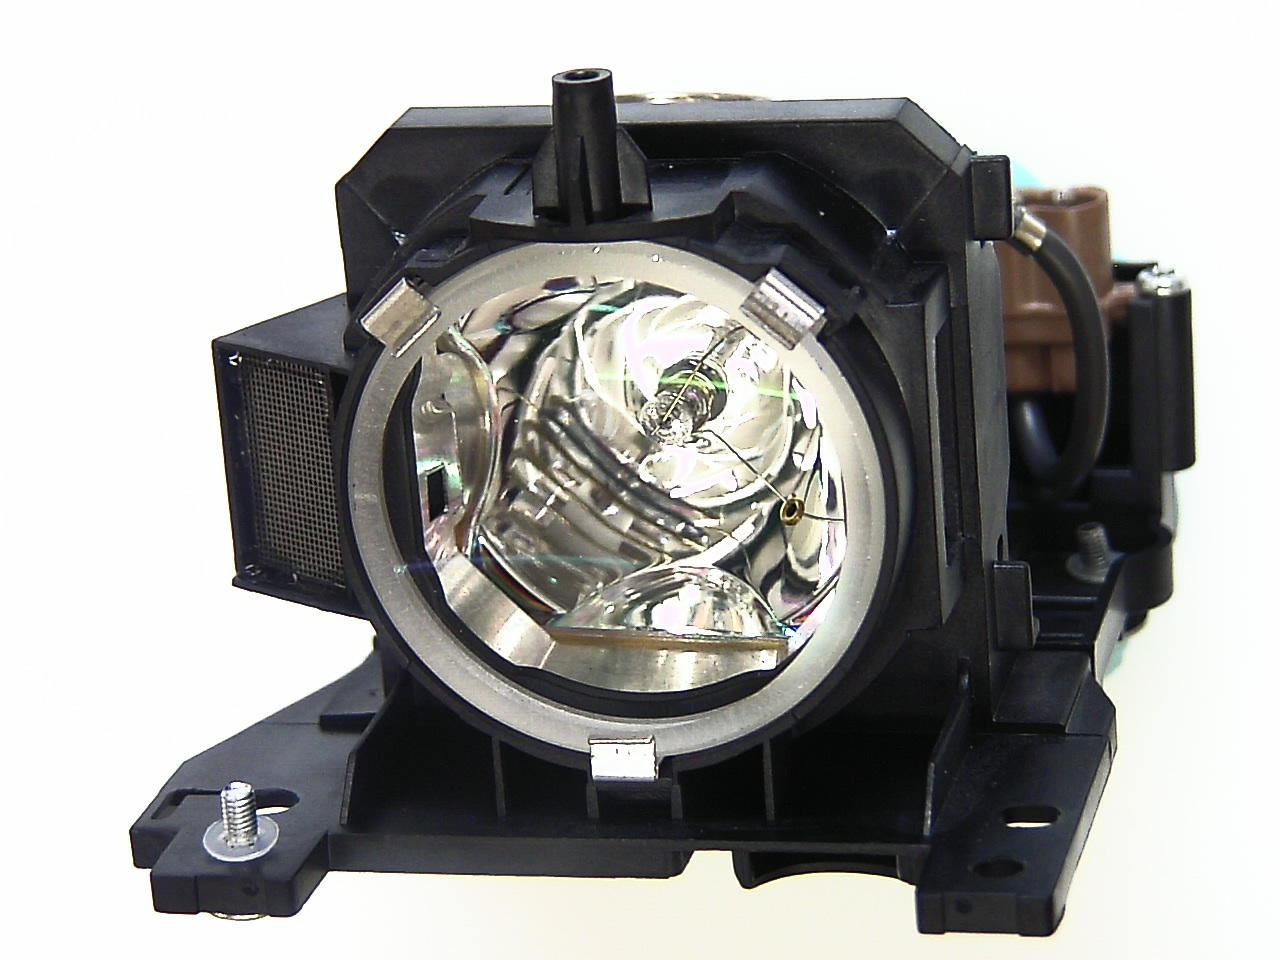 V7 Projector Lamp for selected projectors by HITACHI, DUKANE, 3M,